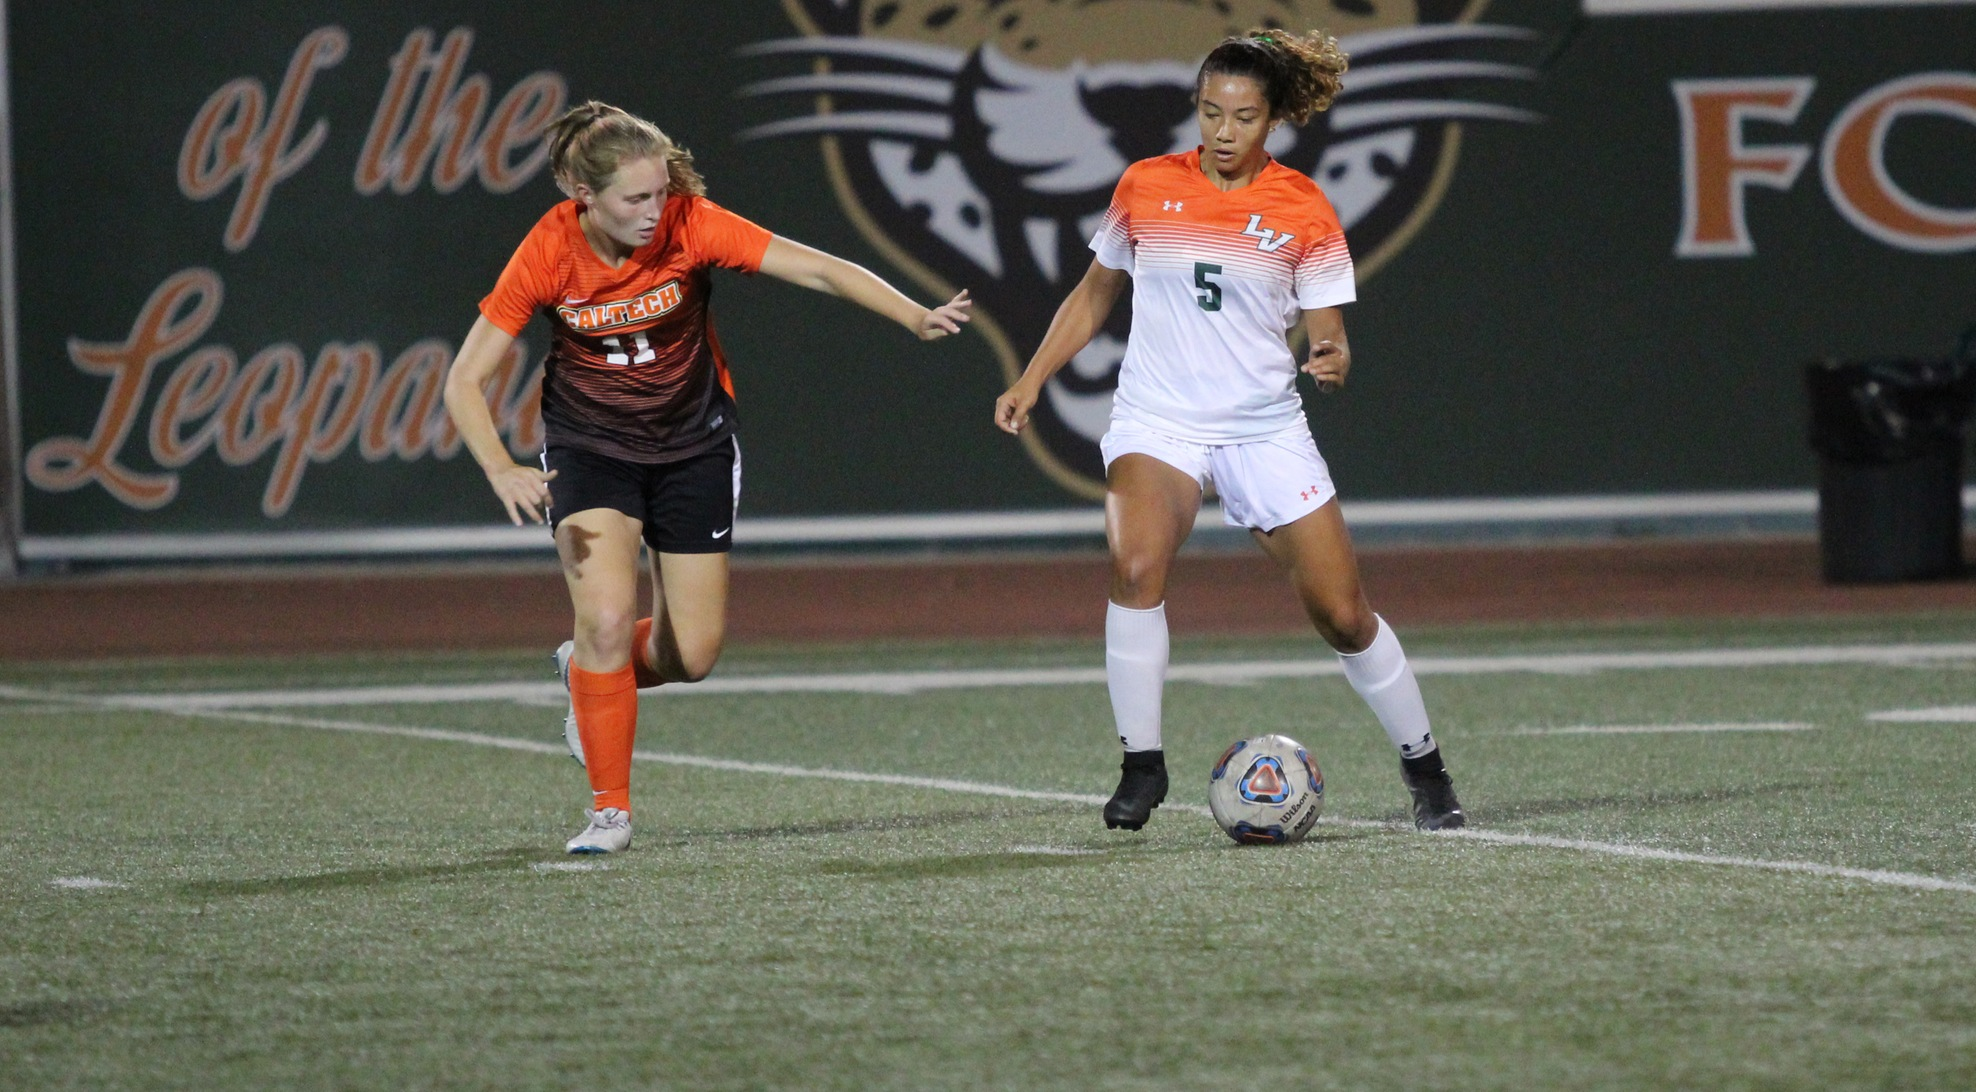 Women's Soccer takes down Caltech at home